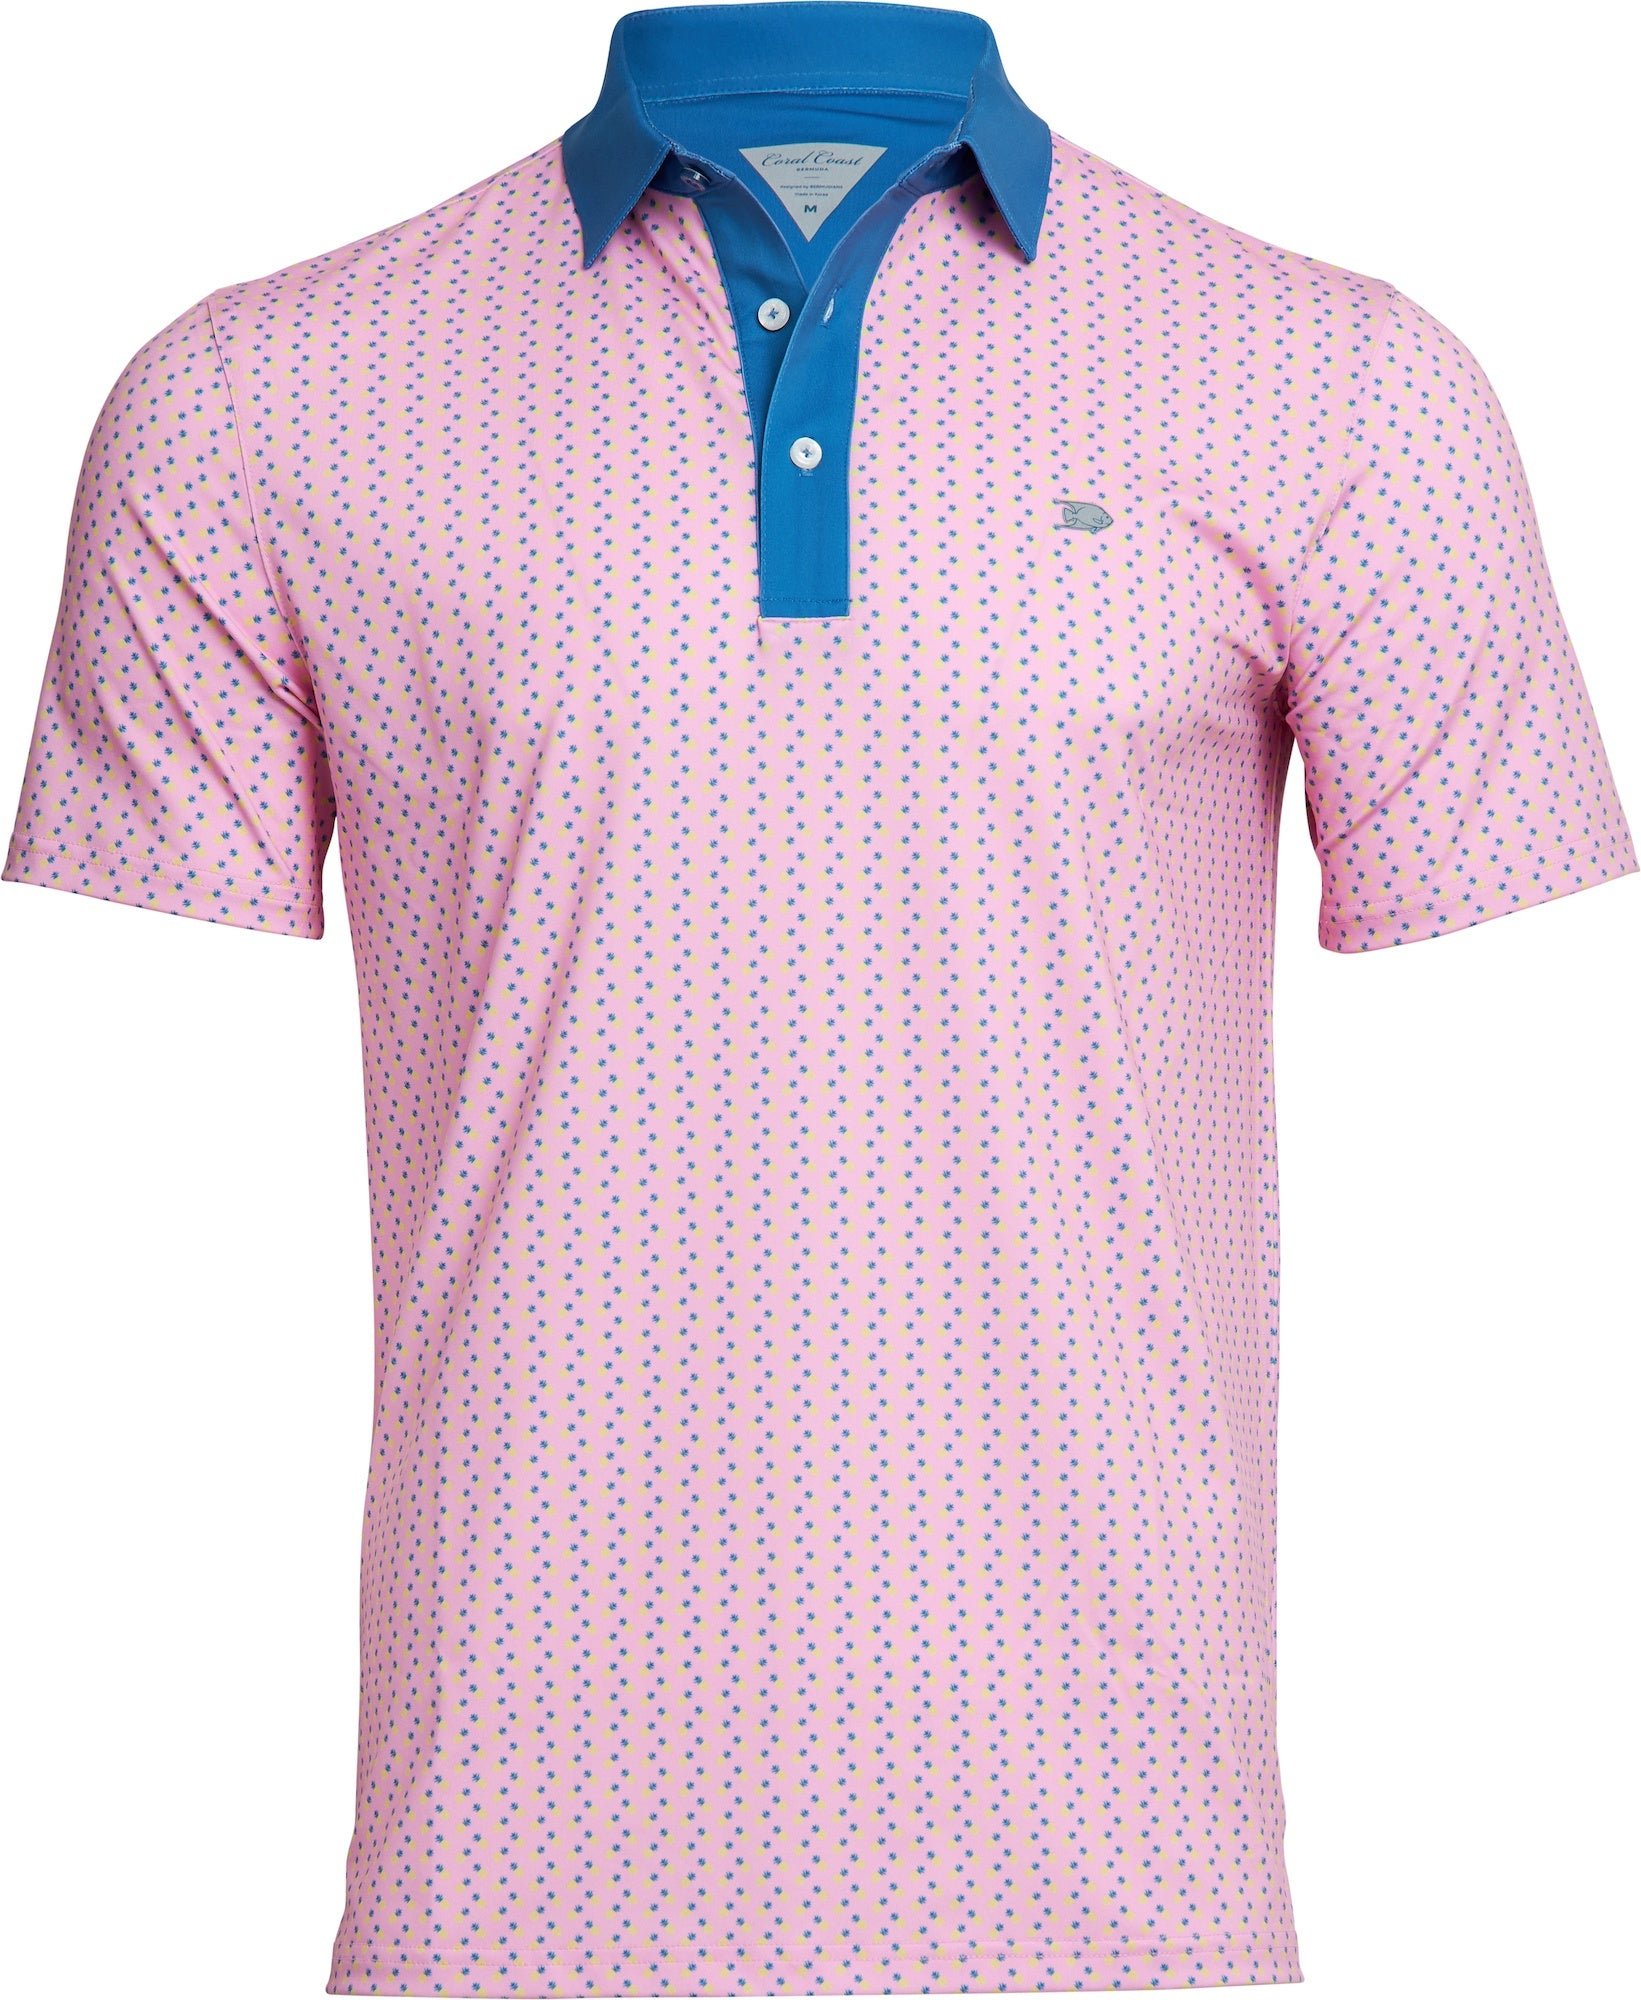 Pineapple Performance Golf Polo